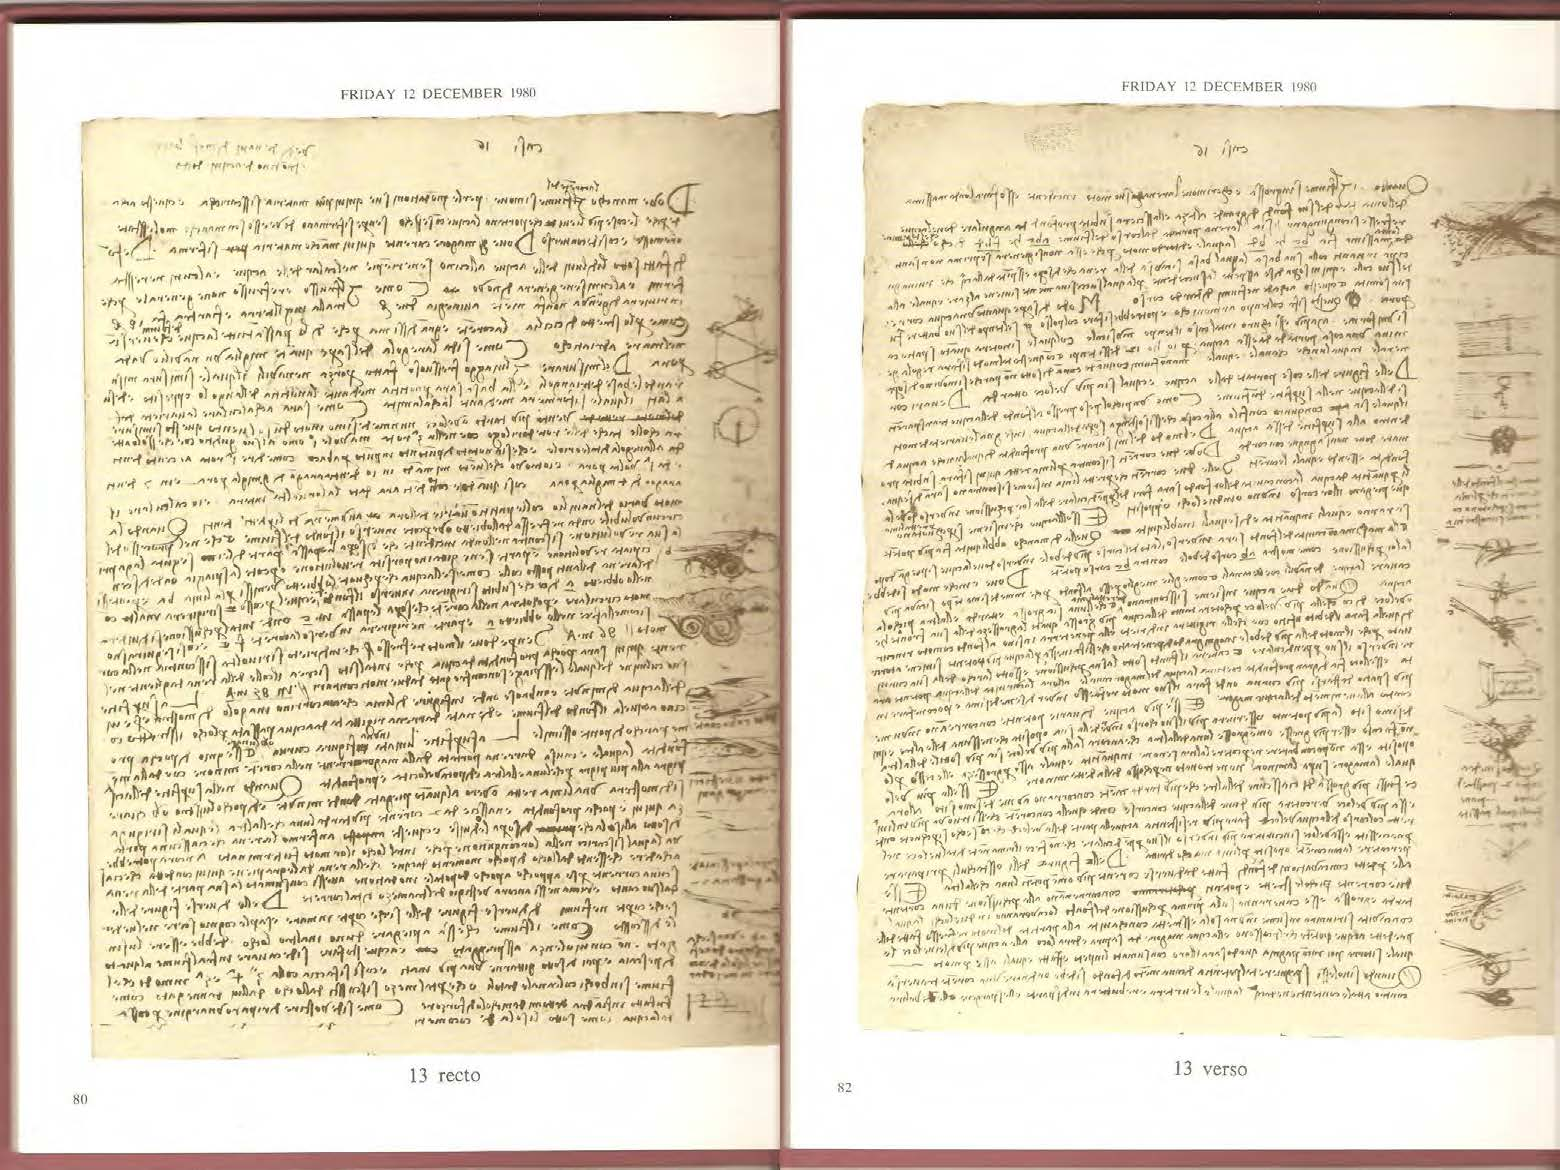 Codex_Leicester_Page_14_Image_0001.jpg